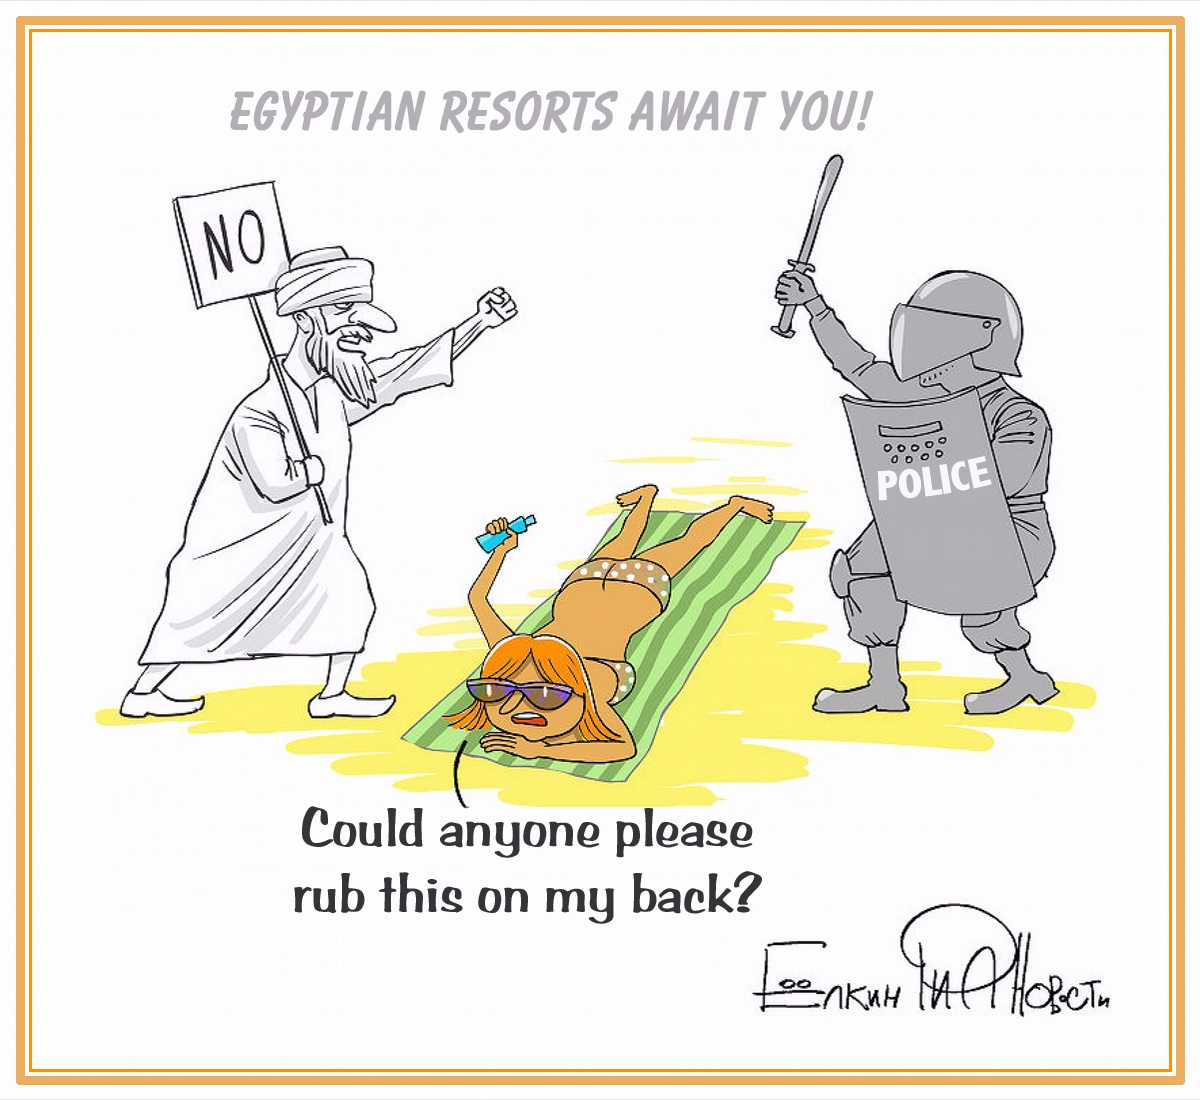 00 Sergei Yolkin. Egyptian Resorts. Sun and Sights. 2013